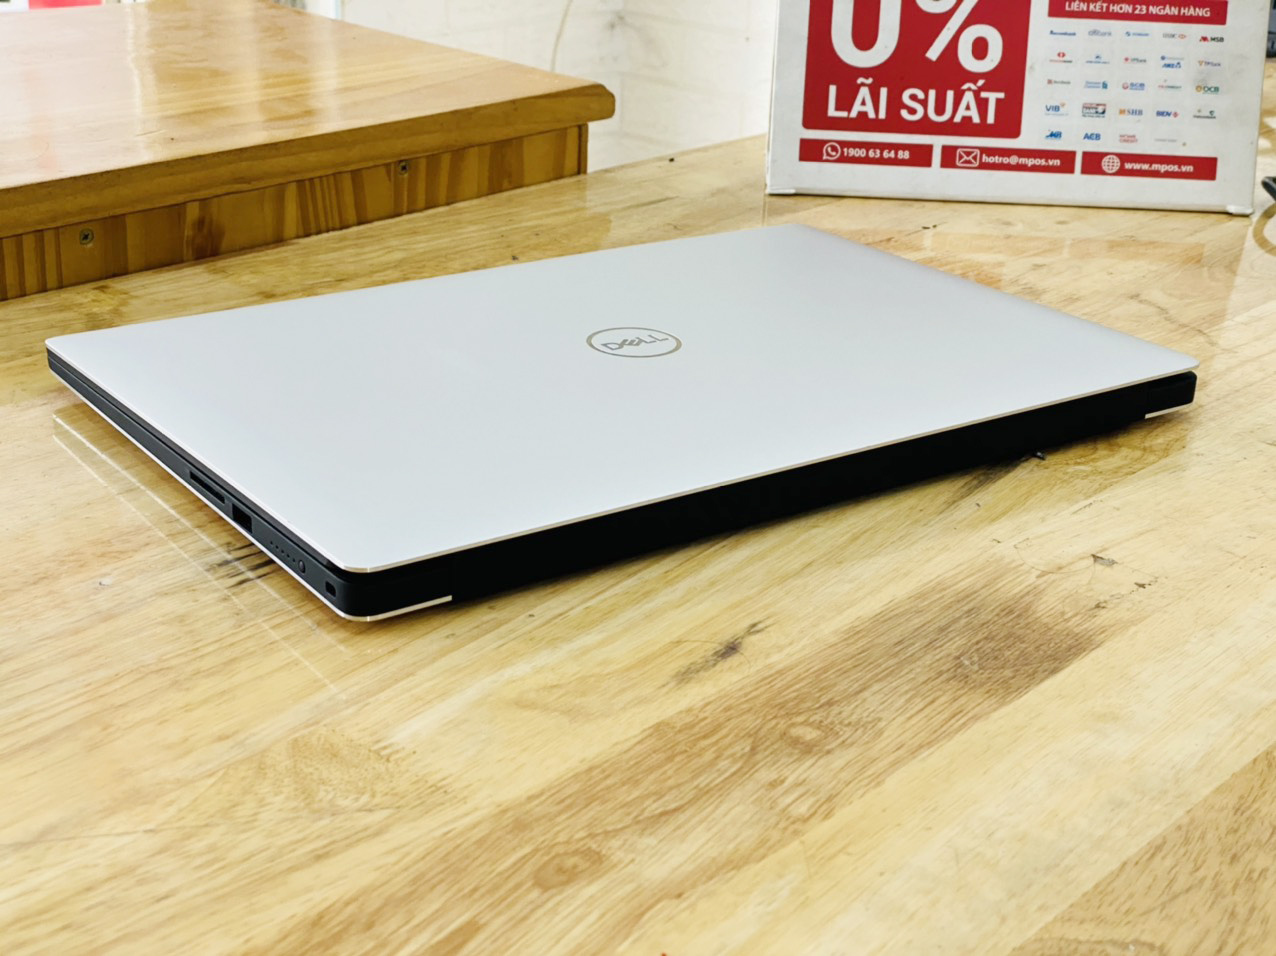 Dell XPS 9570